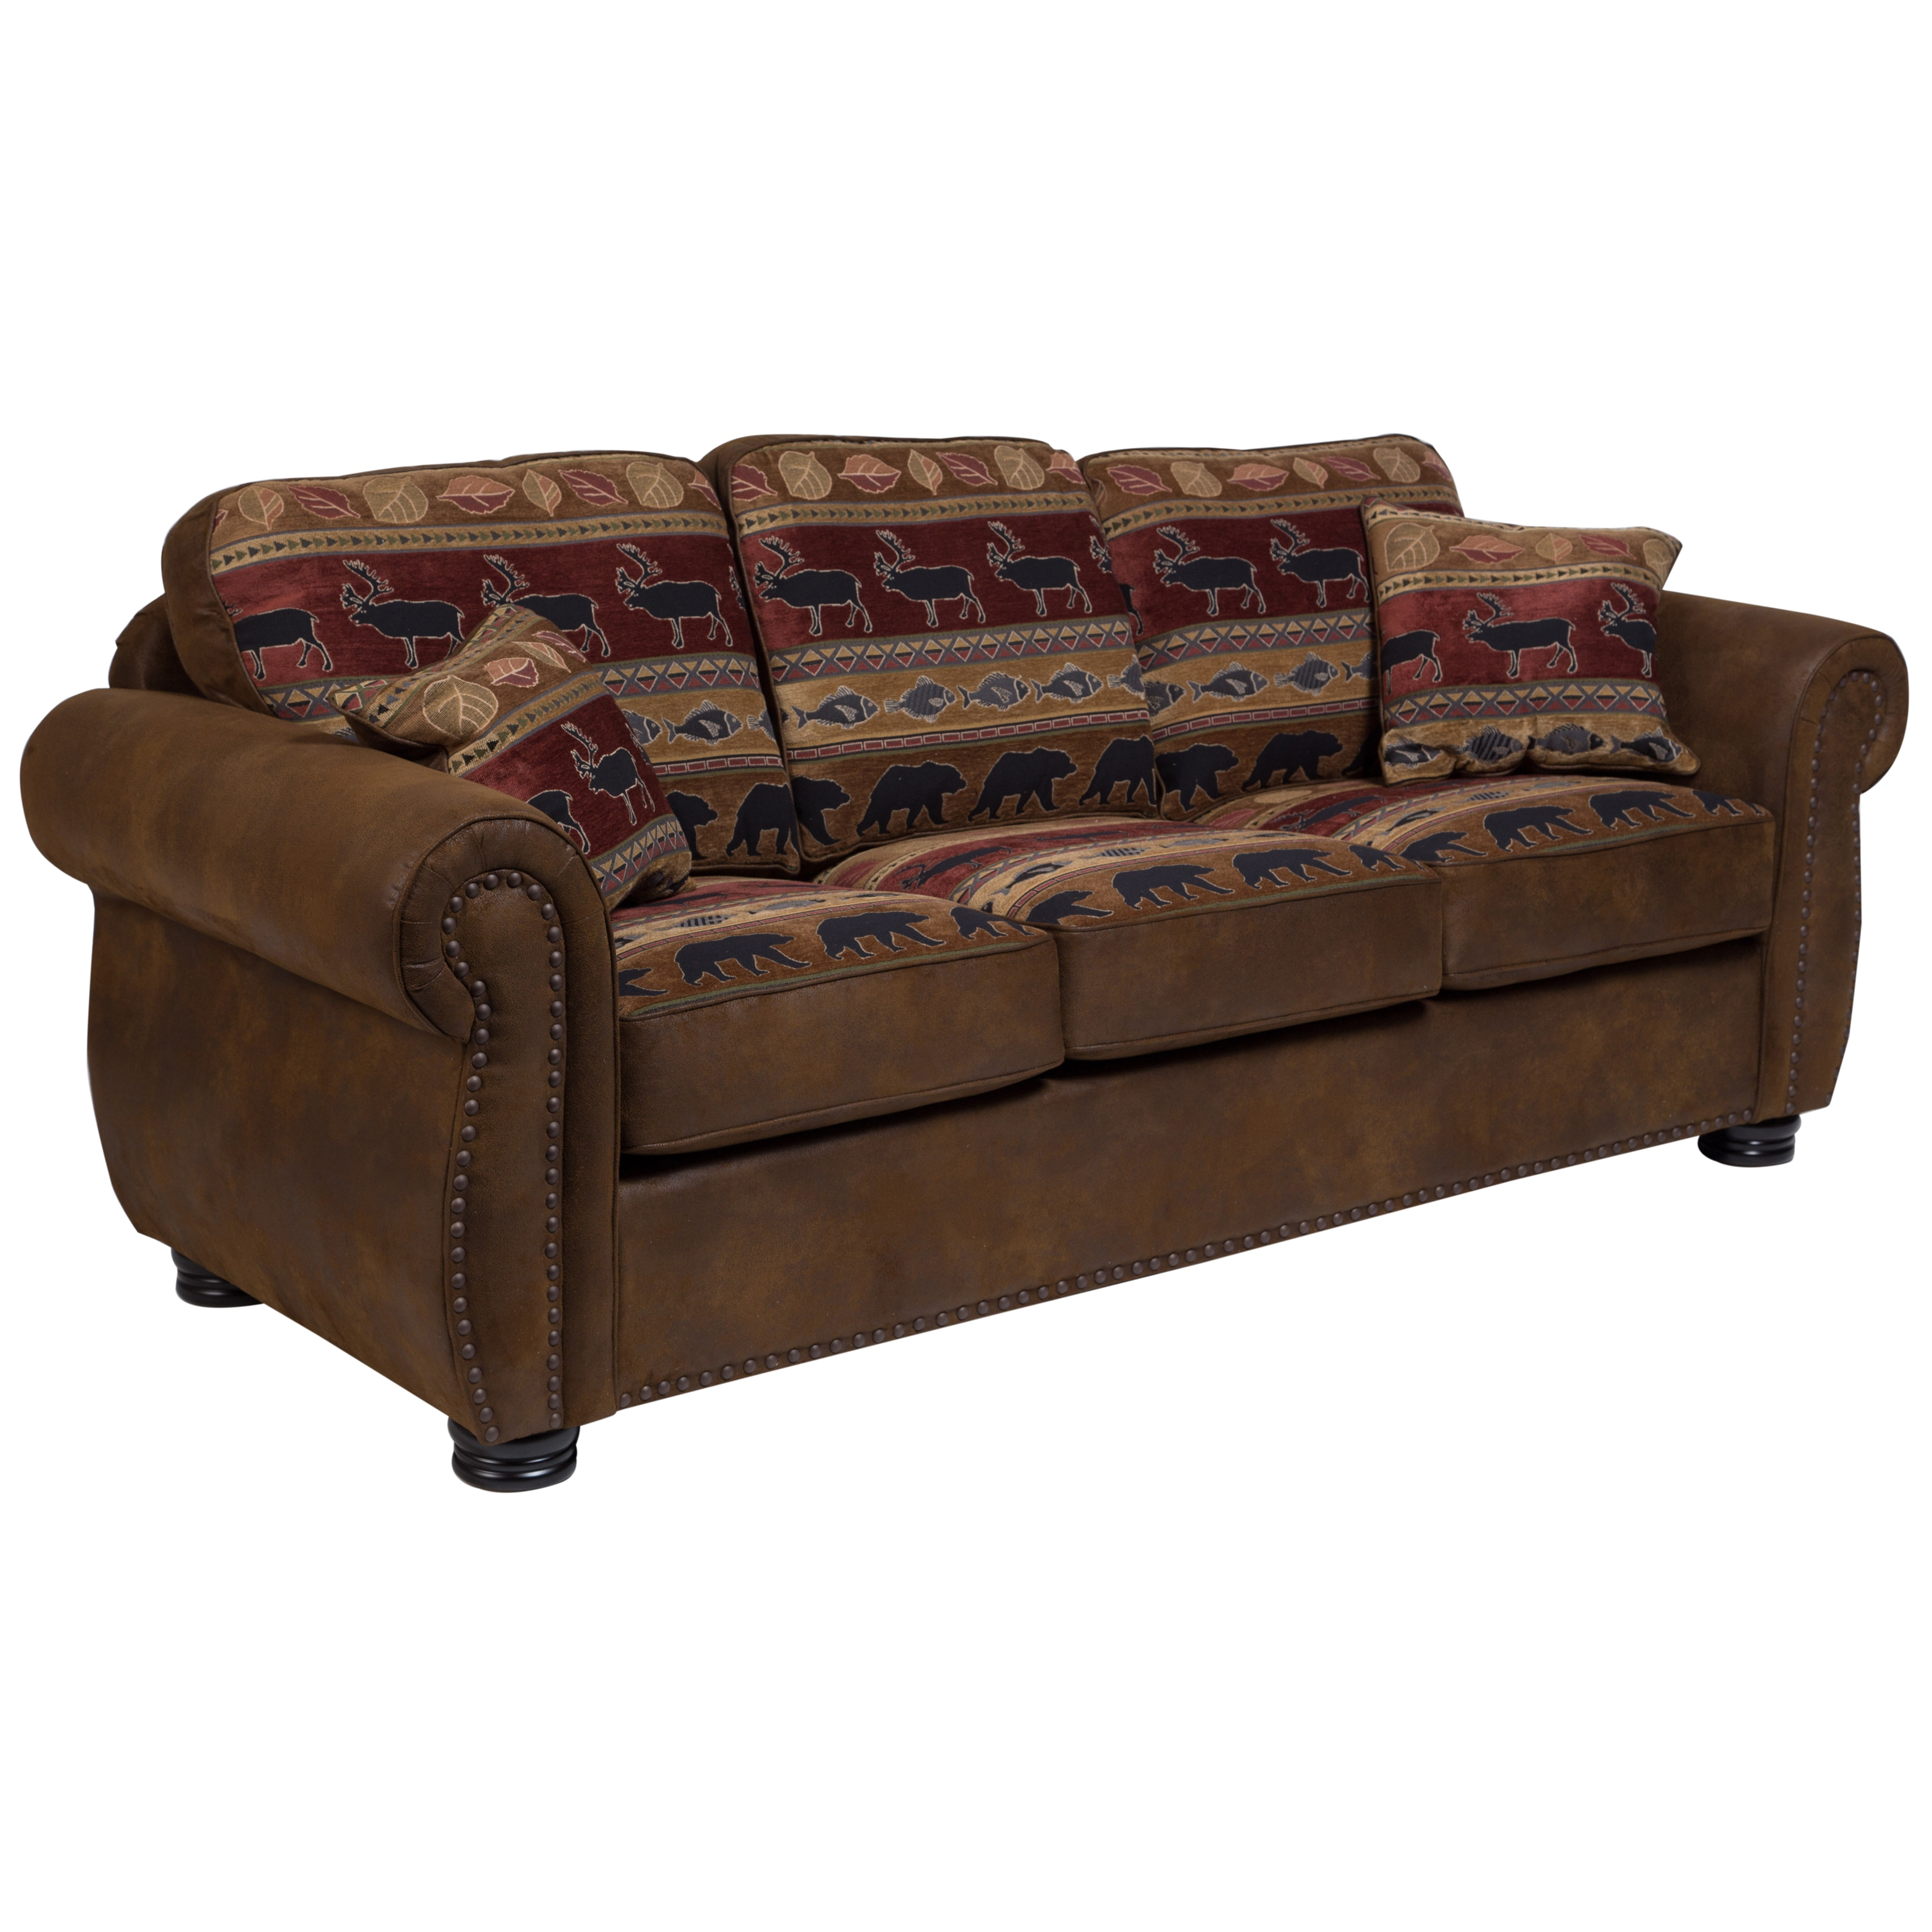 Porter Hunter Lodge Style Brown Sleeper Sofa with Deer, Bear and Fish  Fabric - 38\